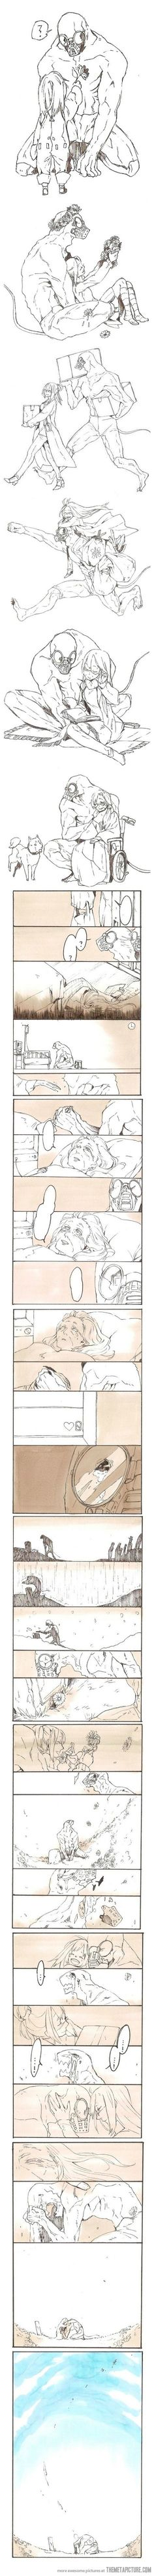 My best friend - I wish I knew who drew this, but it makes me cry every time I look at it. It is so beautiful...